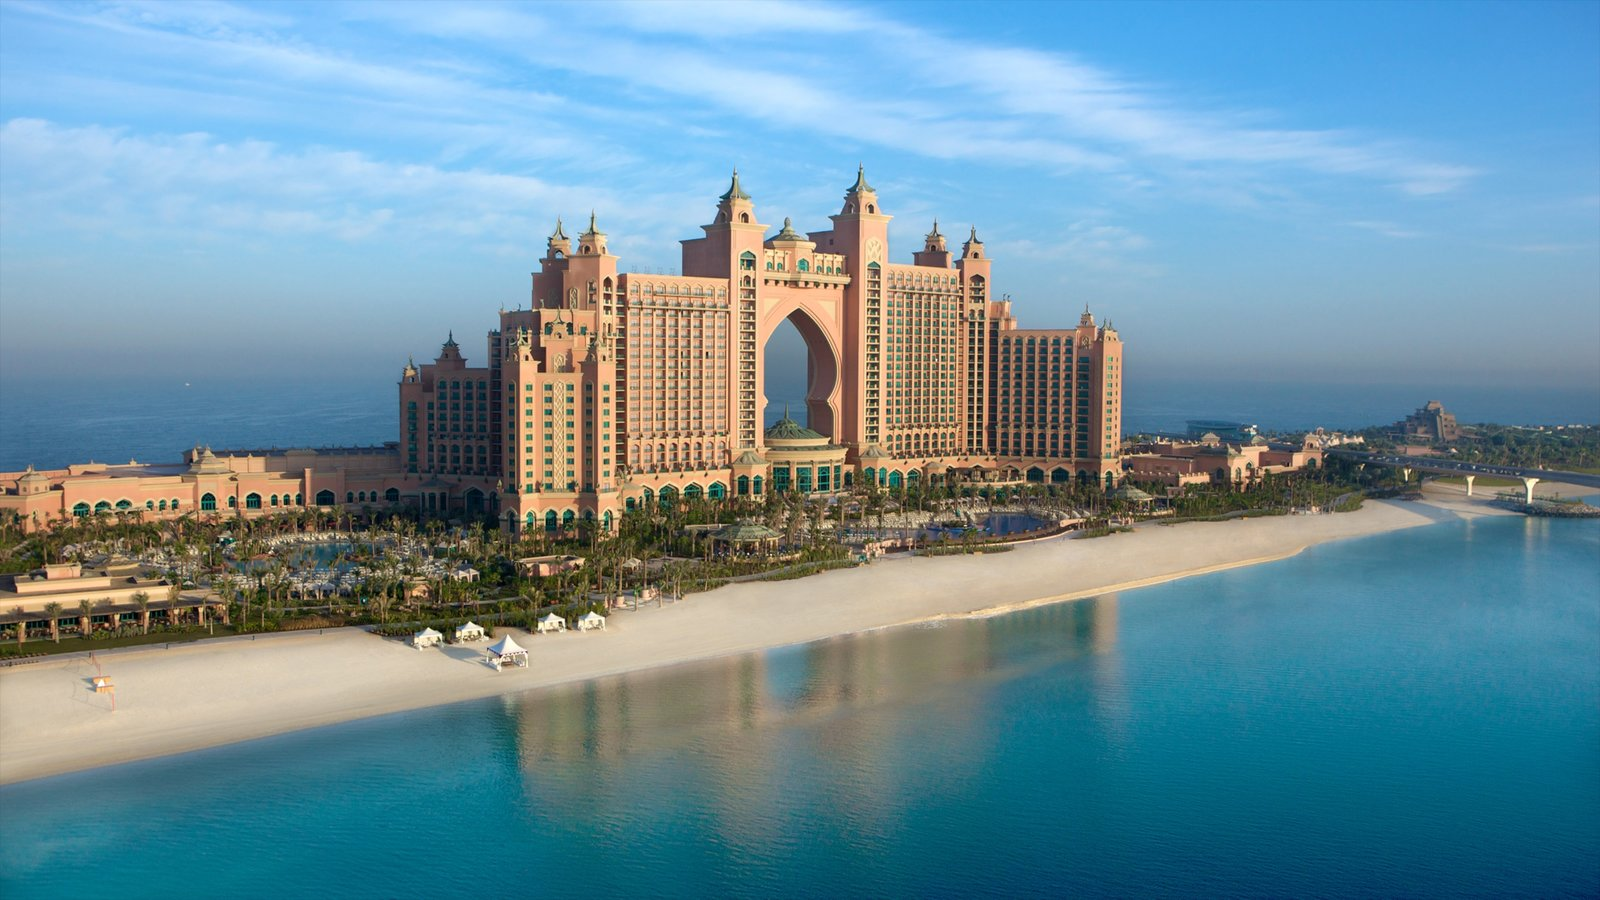 Dubai Emirate showing tropical scenes, modern architecture and a beach